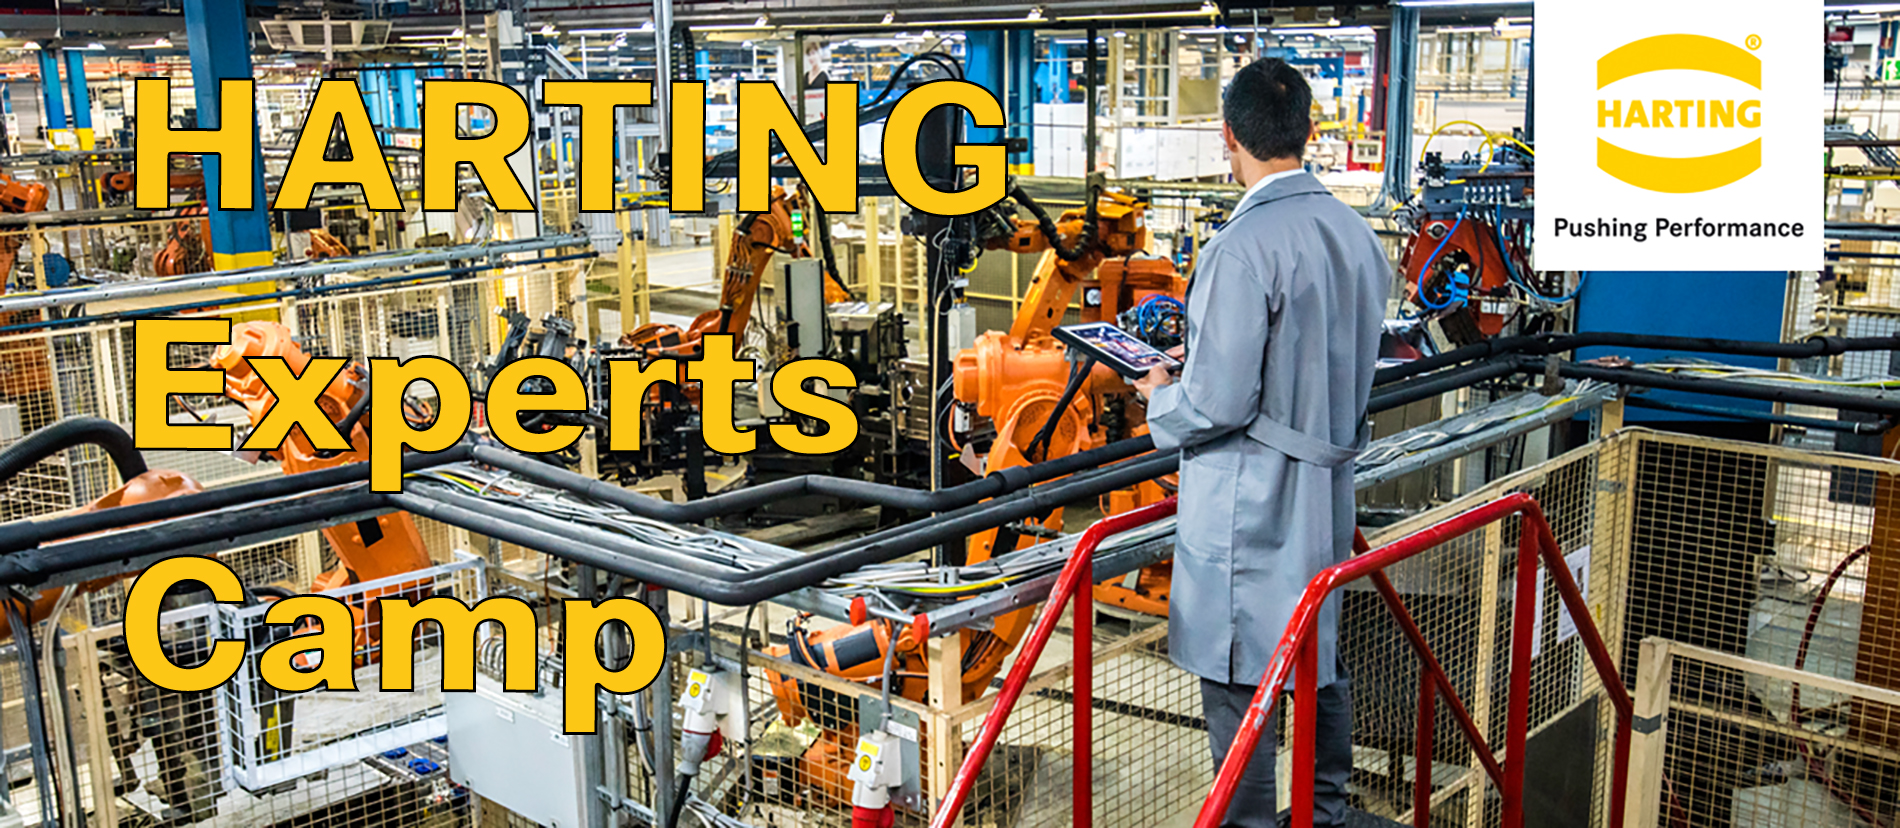 HARTING Experts Camp - The Manufacturer